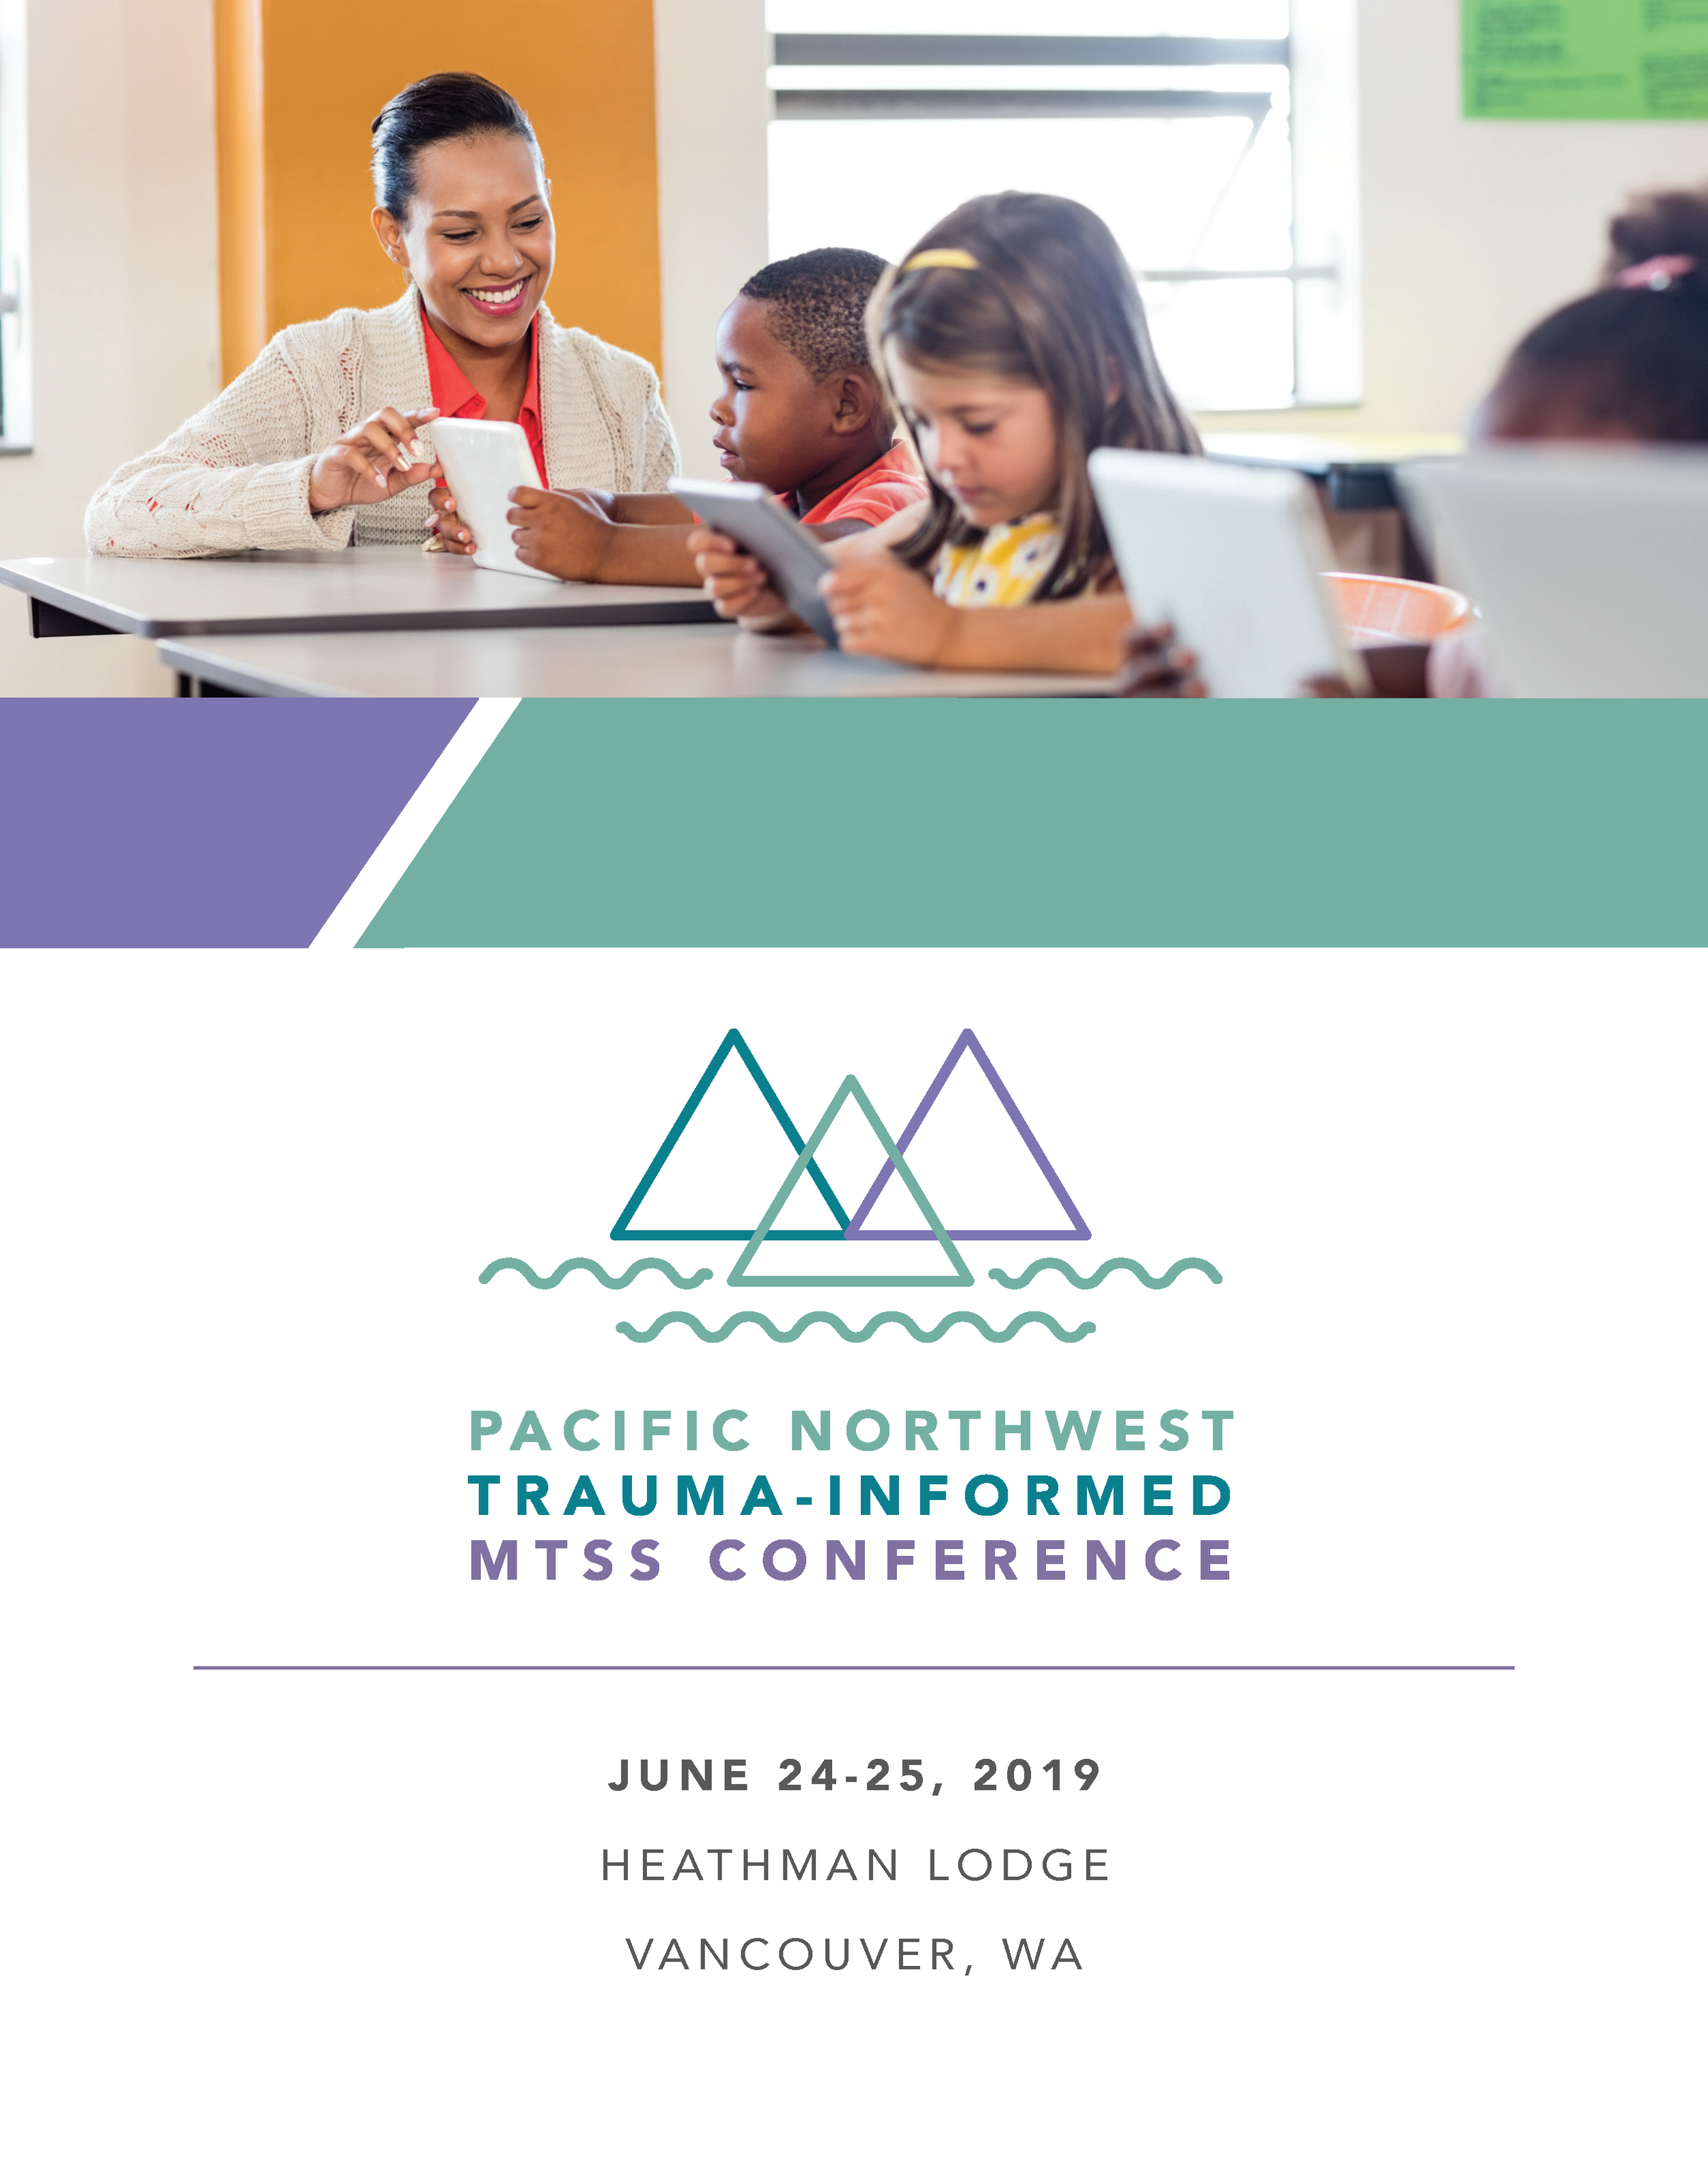 Program-MTSS_5-29-19 (1)_Page_01.png